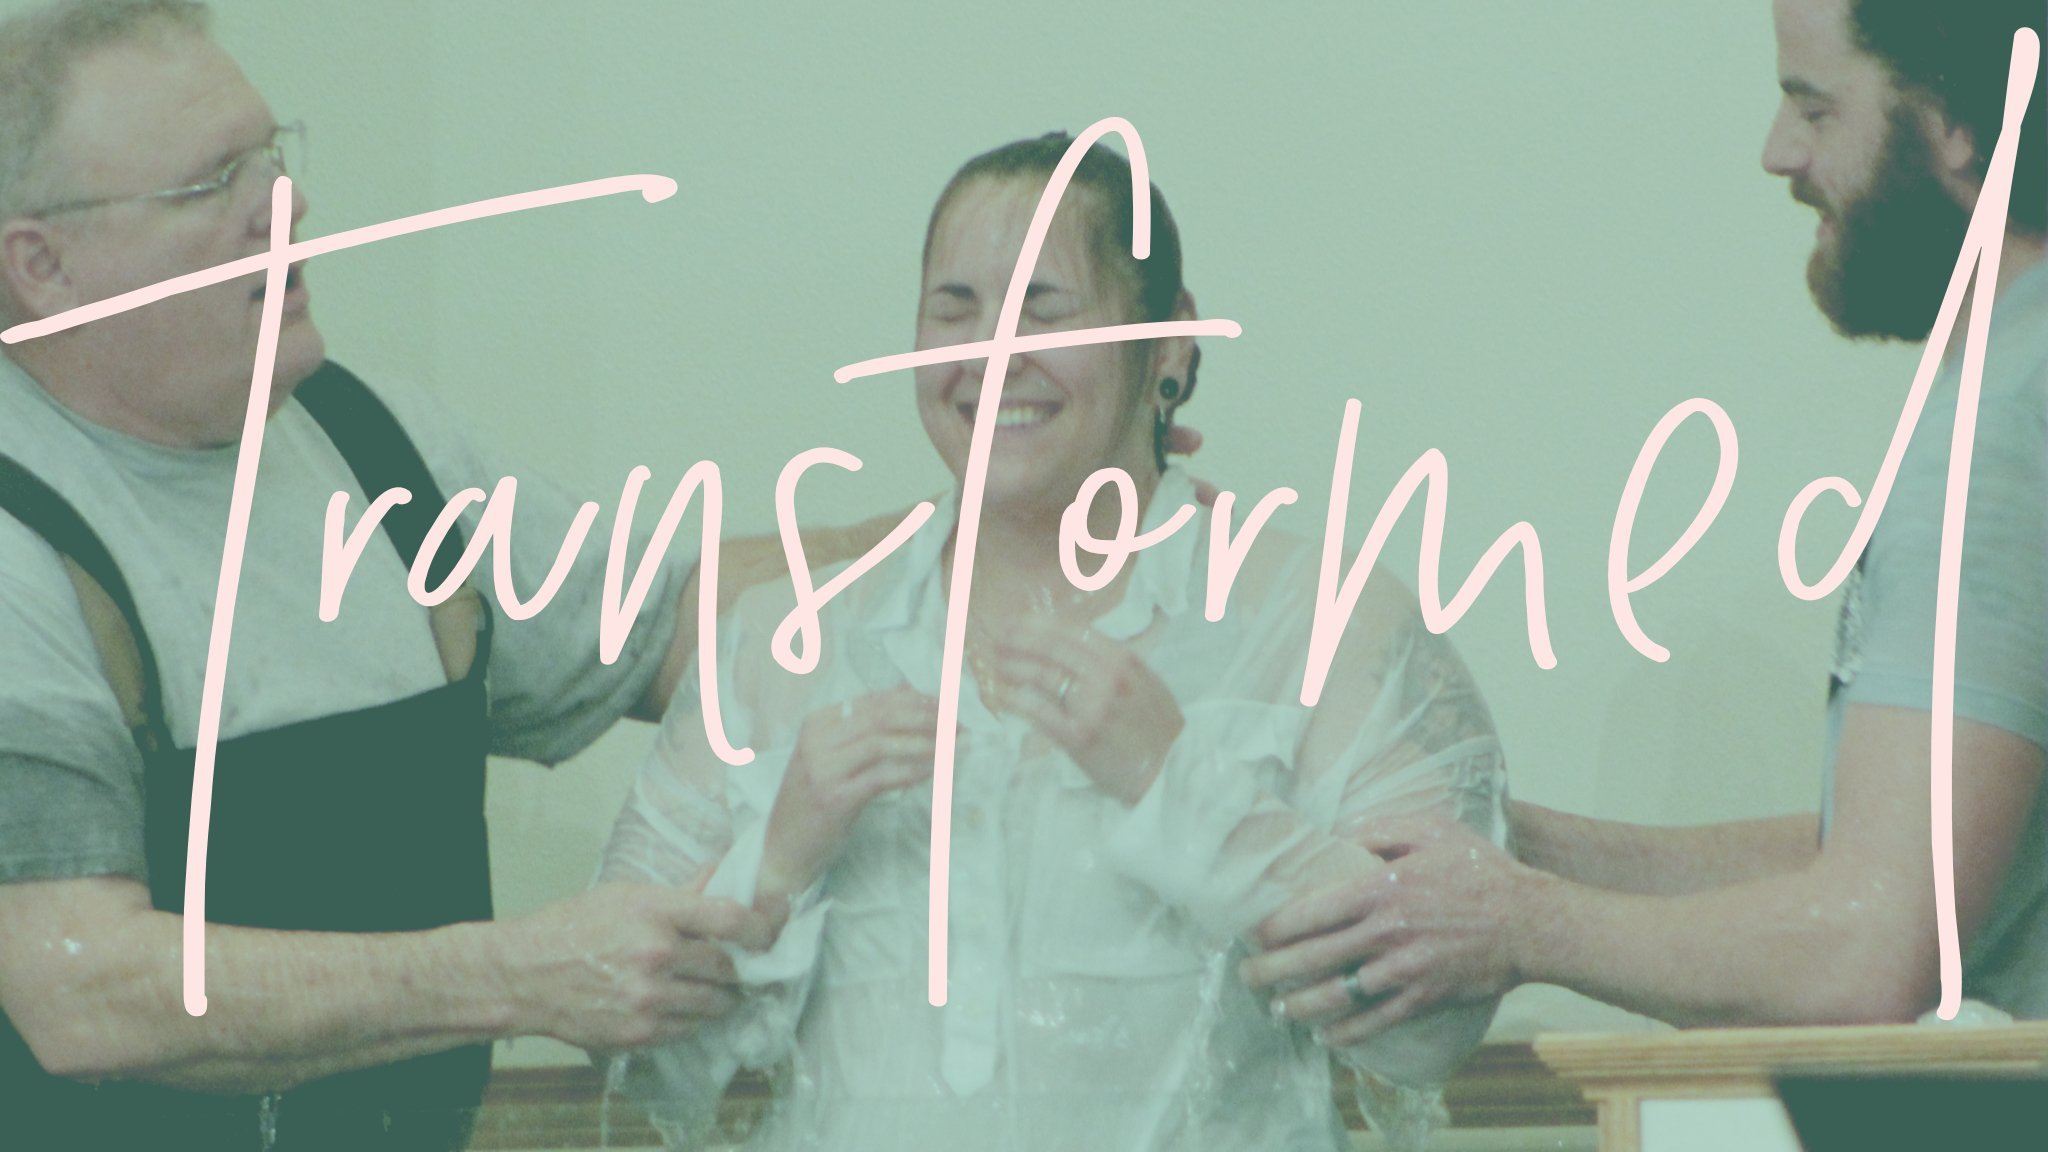 Transformed - Baptism as the outward manifestation of an inward transformation